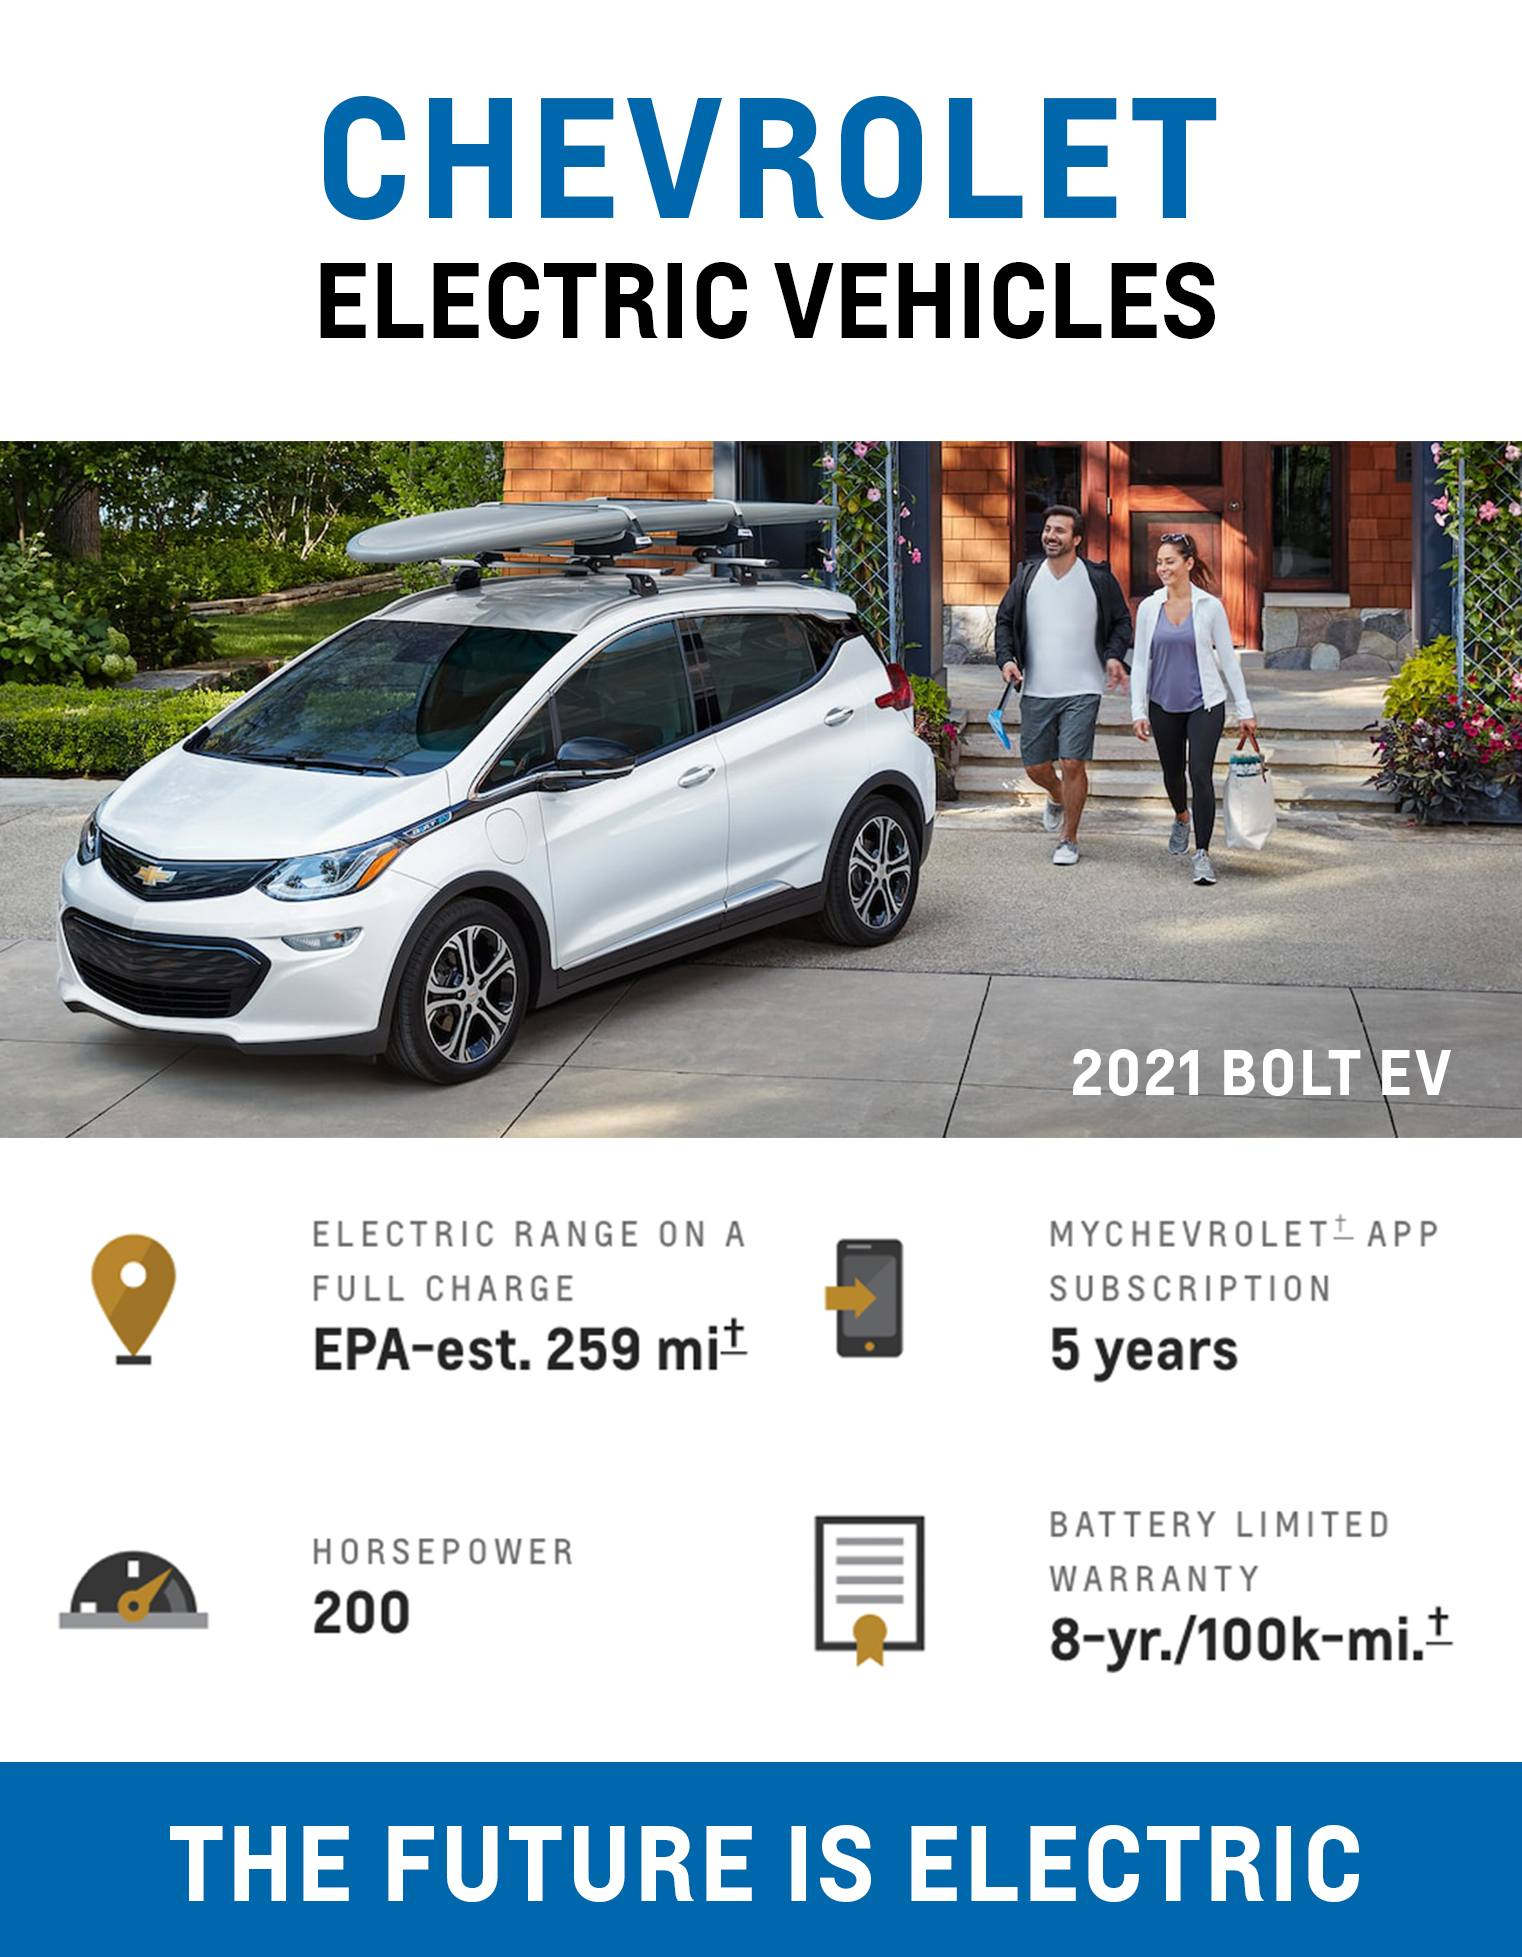 Blue and black writing saying Chevrolet Electric Vehicles and The Future Is Electric. Image of a couple and a white electric hatchback, and graphics explaining the vehicles attributes